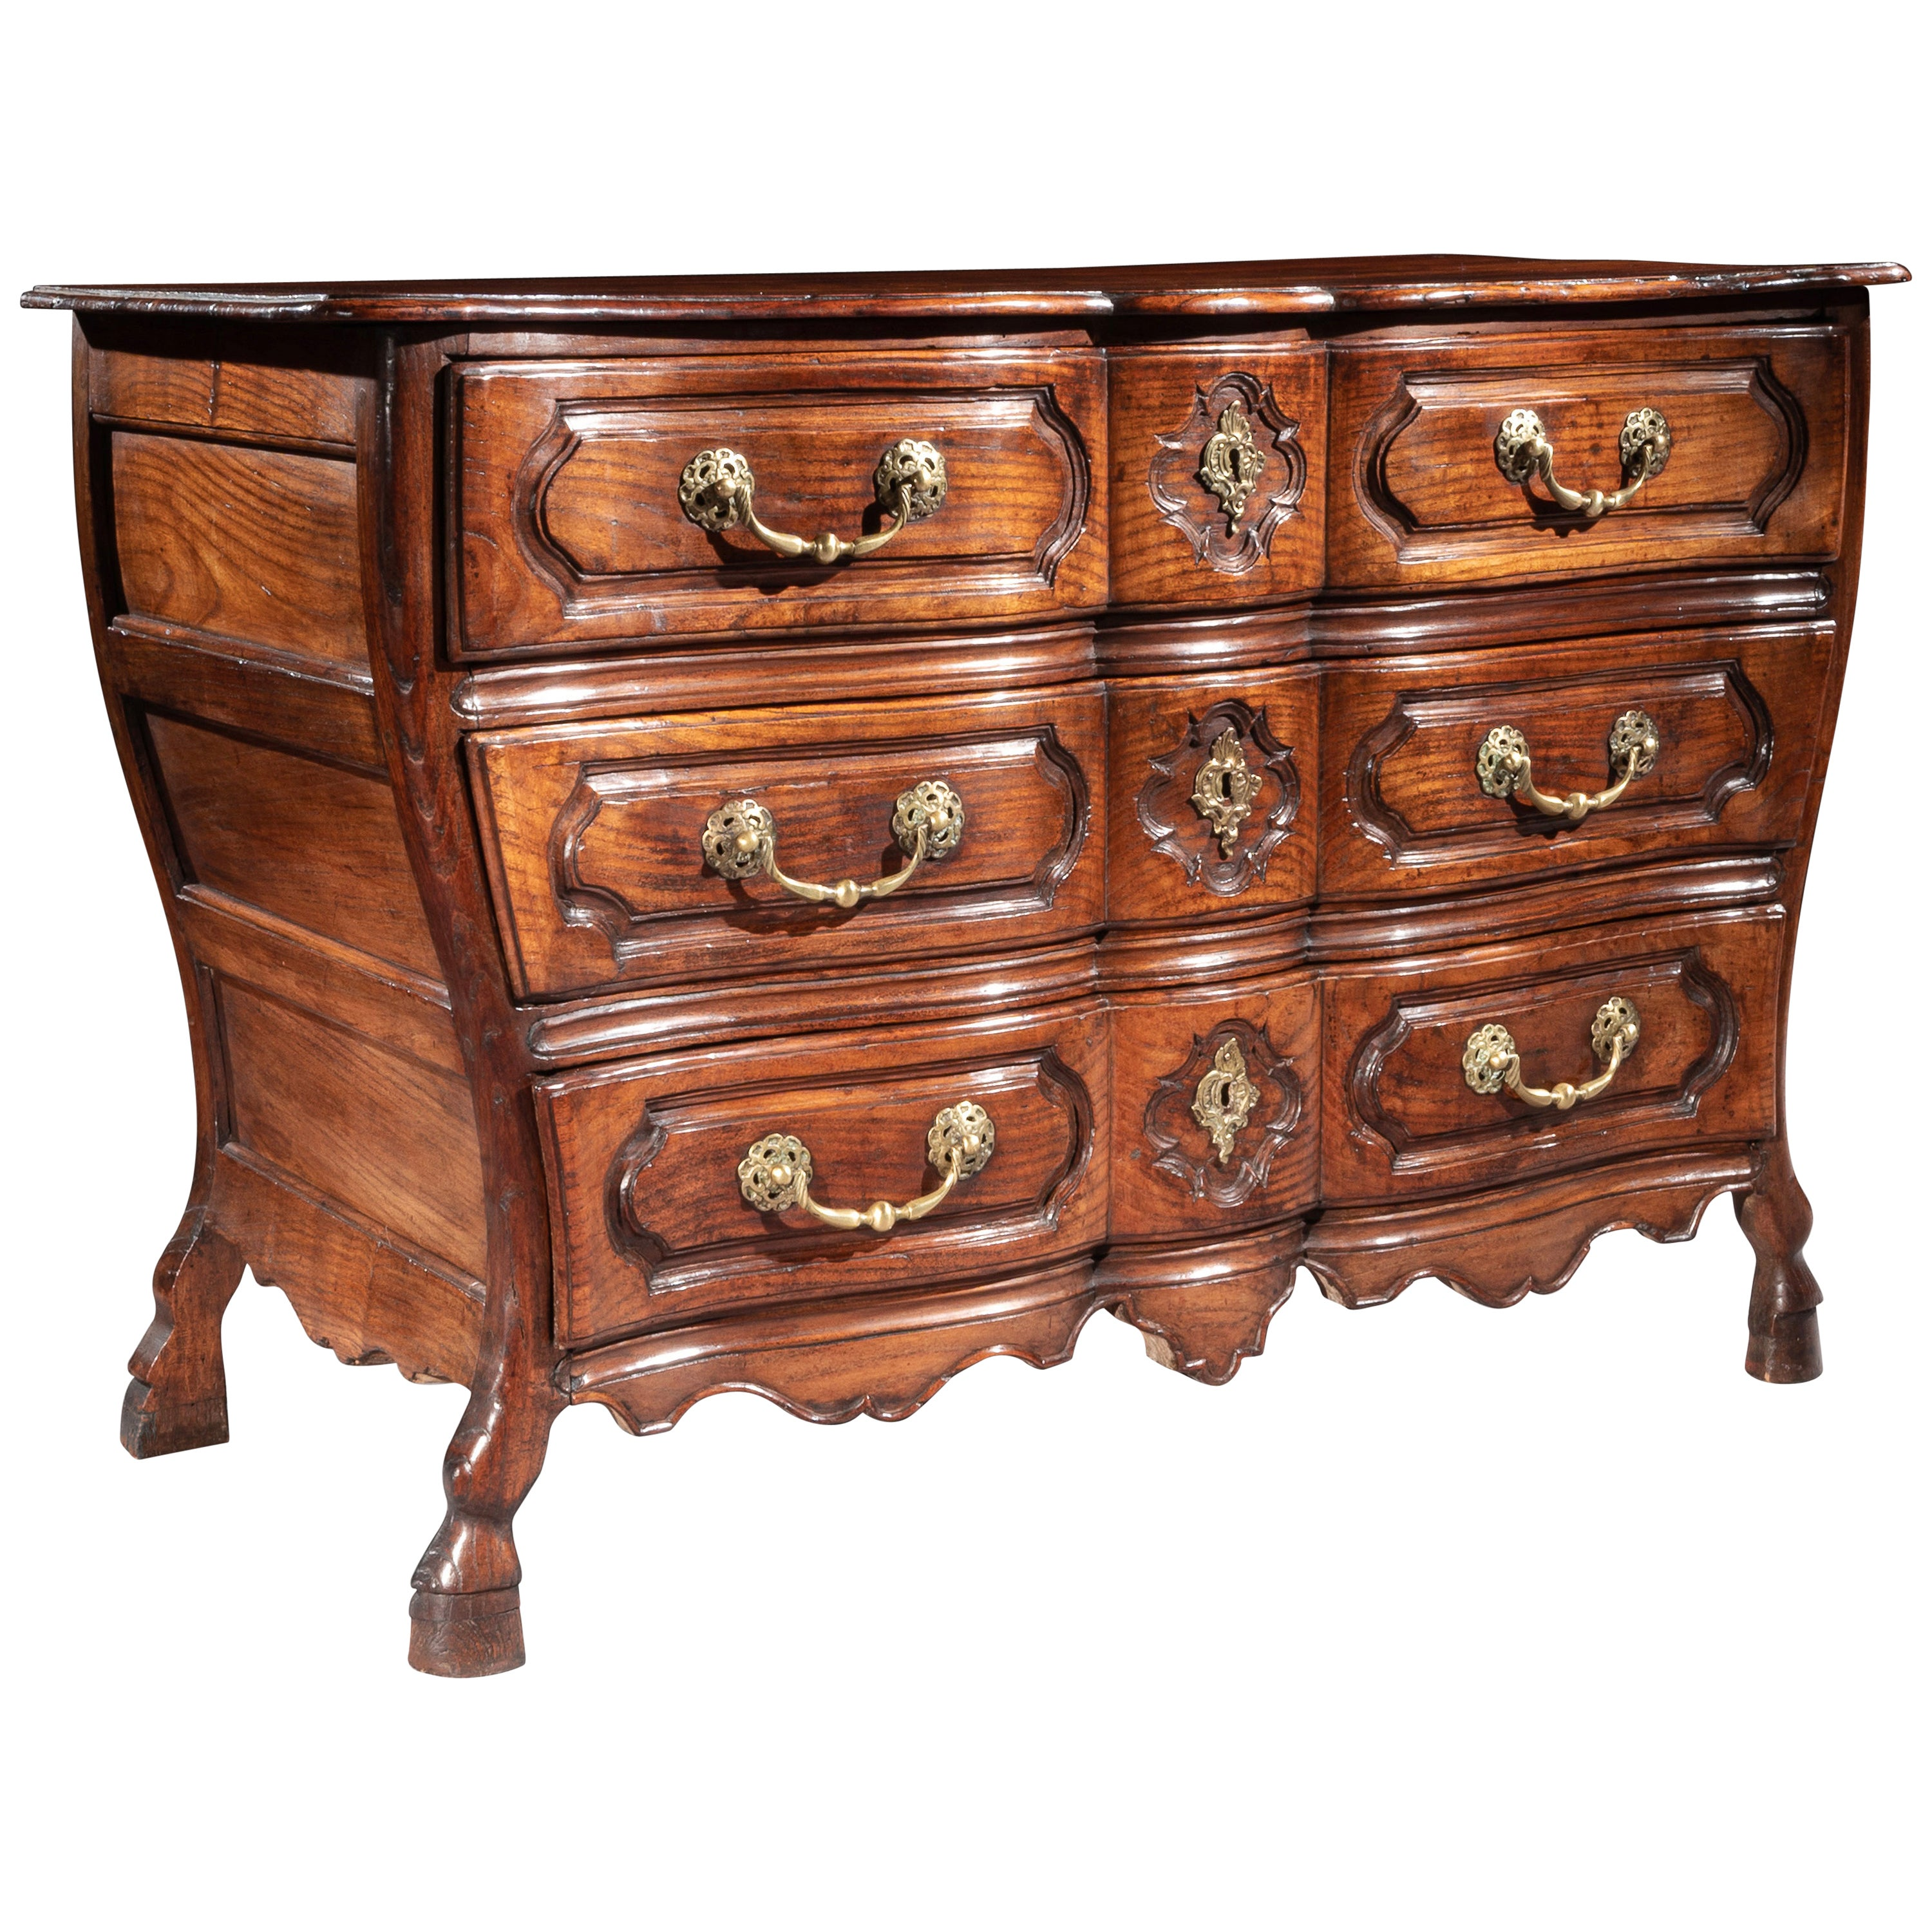 Mid-18th Century Louis XV Bombe Shaped Chestnut Provincial Commode